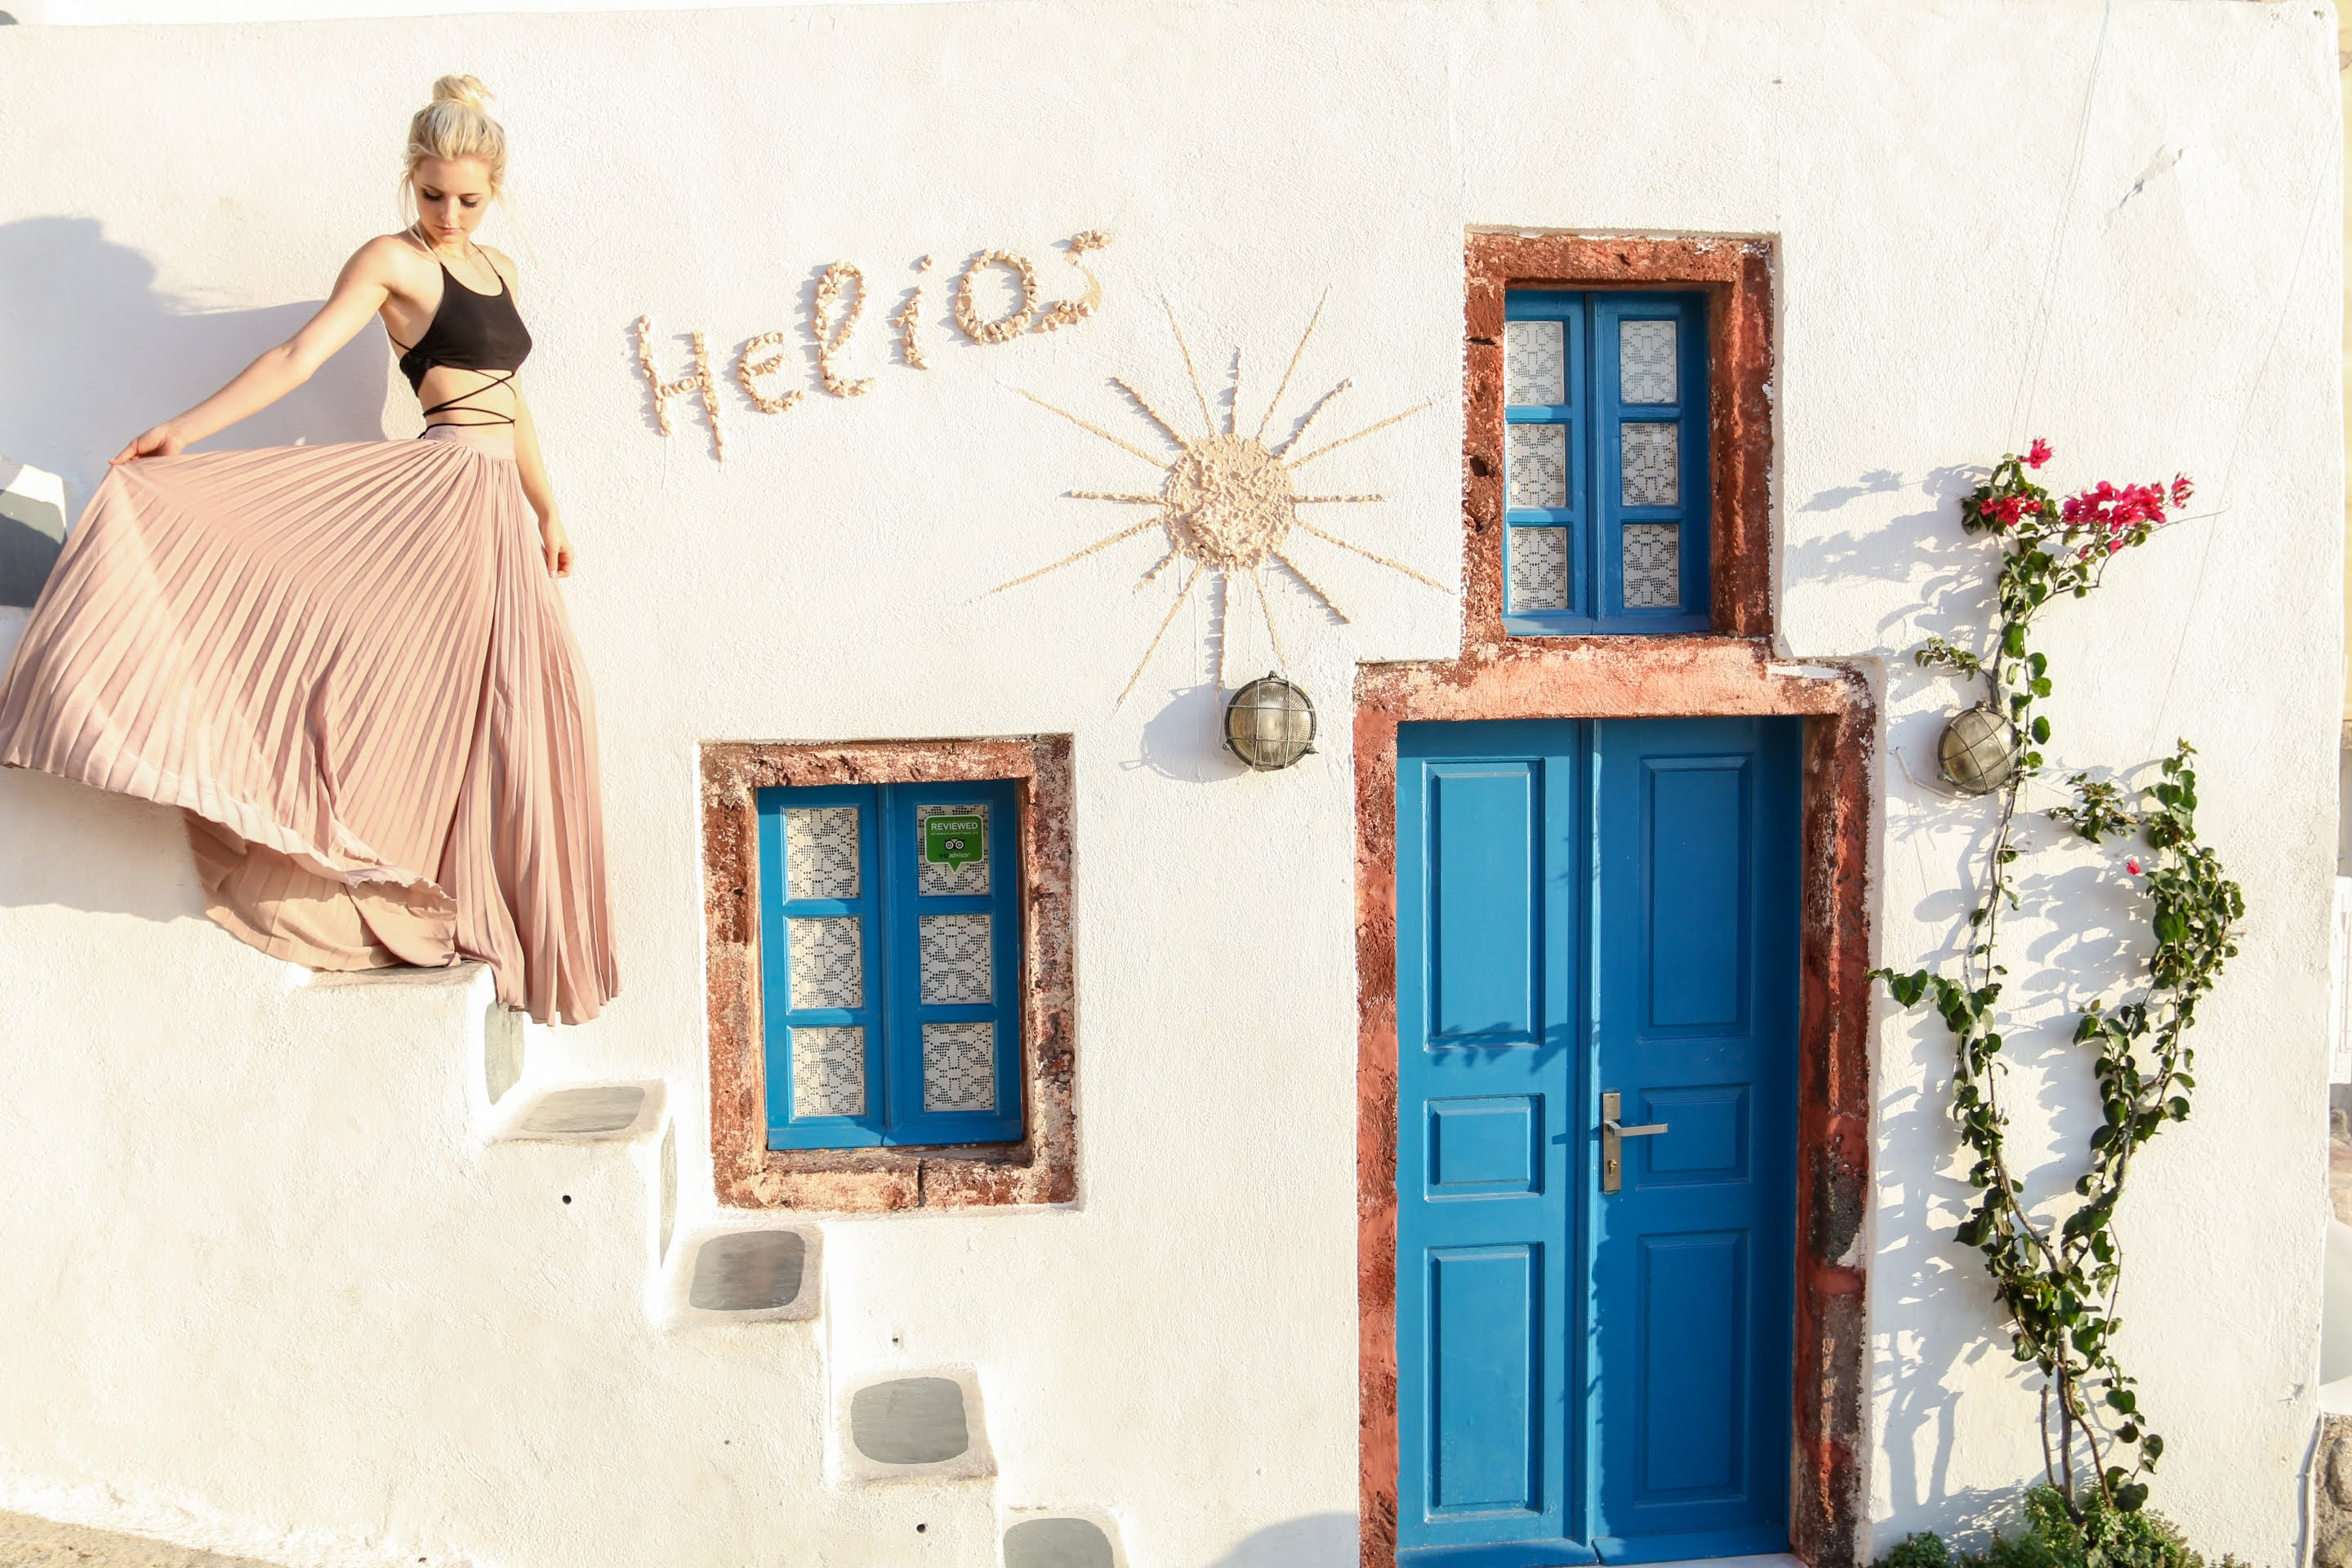 Our dear guest Aspyn comes back to Santorini Paradise Cave Houses